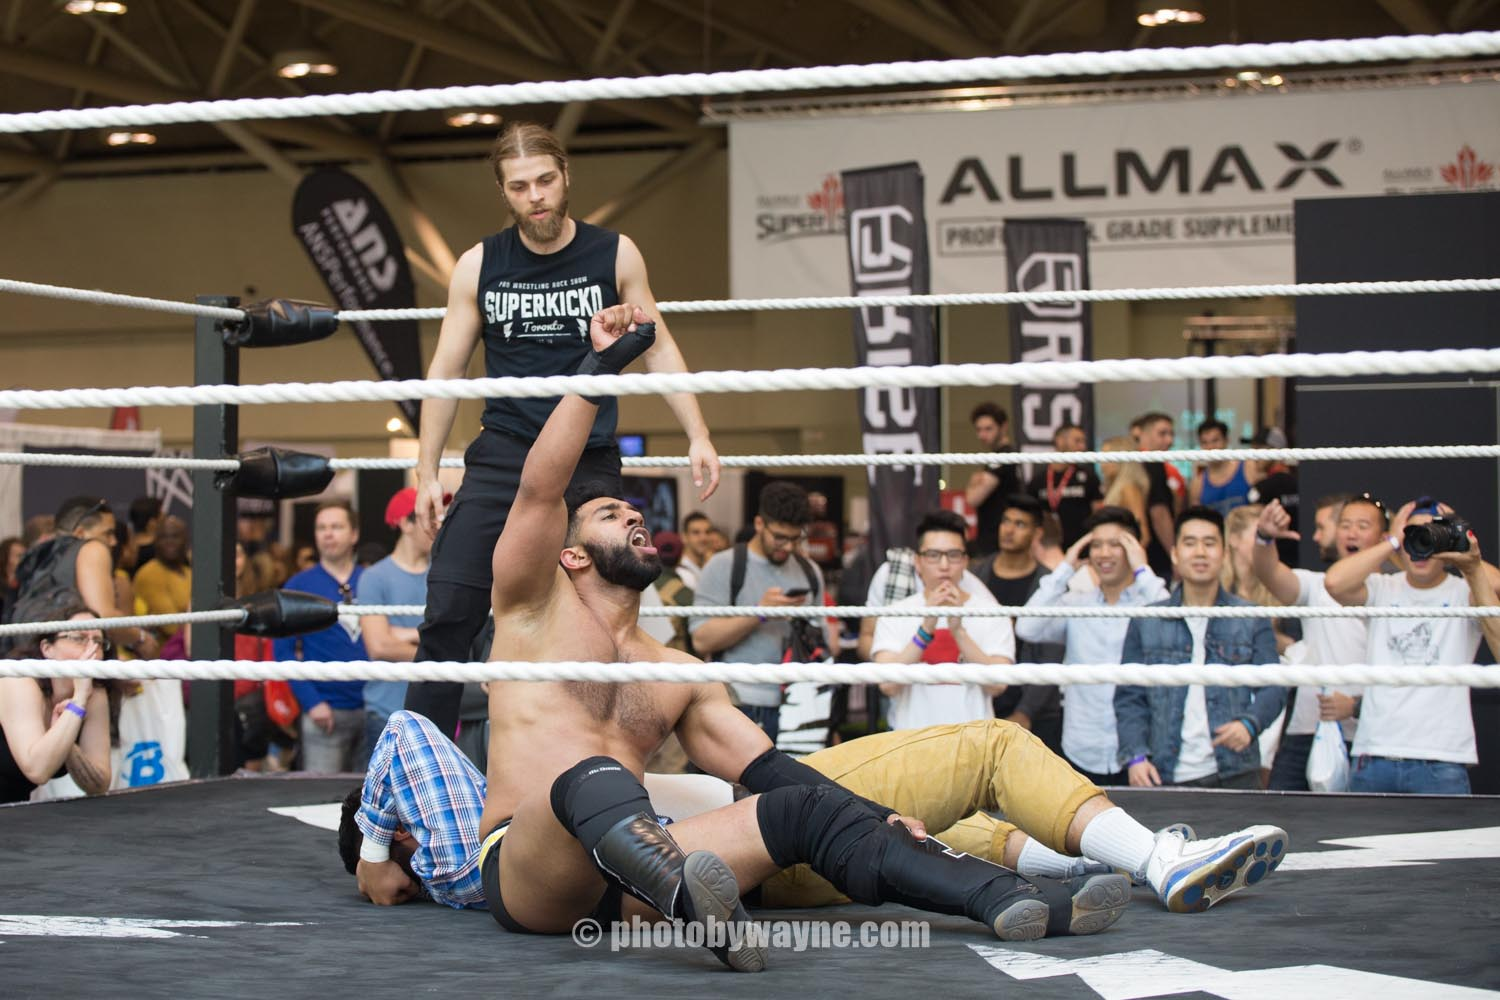 20-toronto-pro-supershow-wrestling-presentation.jpg